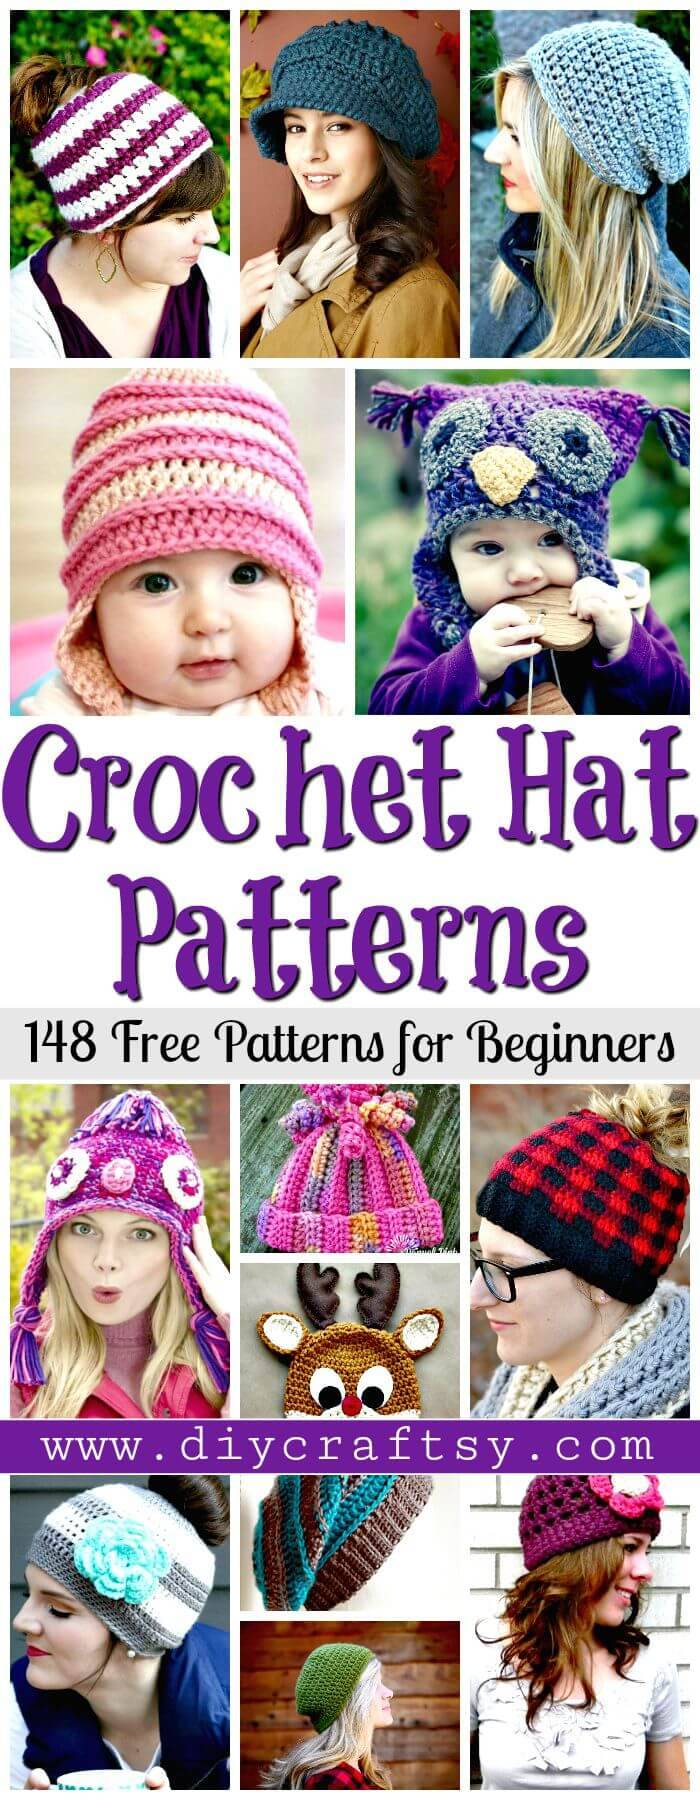 Crochet Hat Patterns – 148 Free Patterns for Beginners - Free Crochet Patterns - DIY Crafts